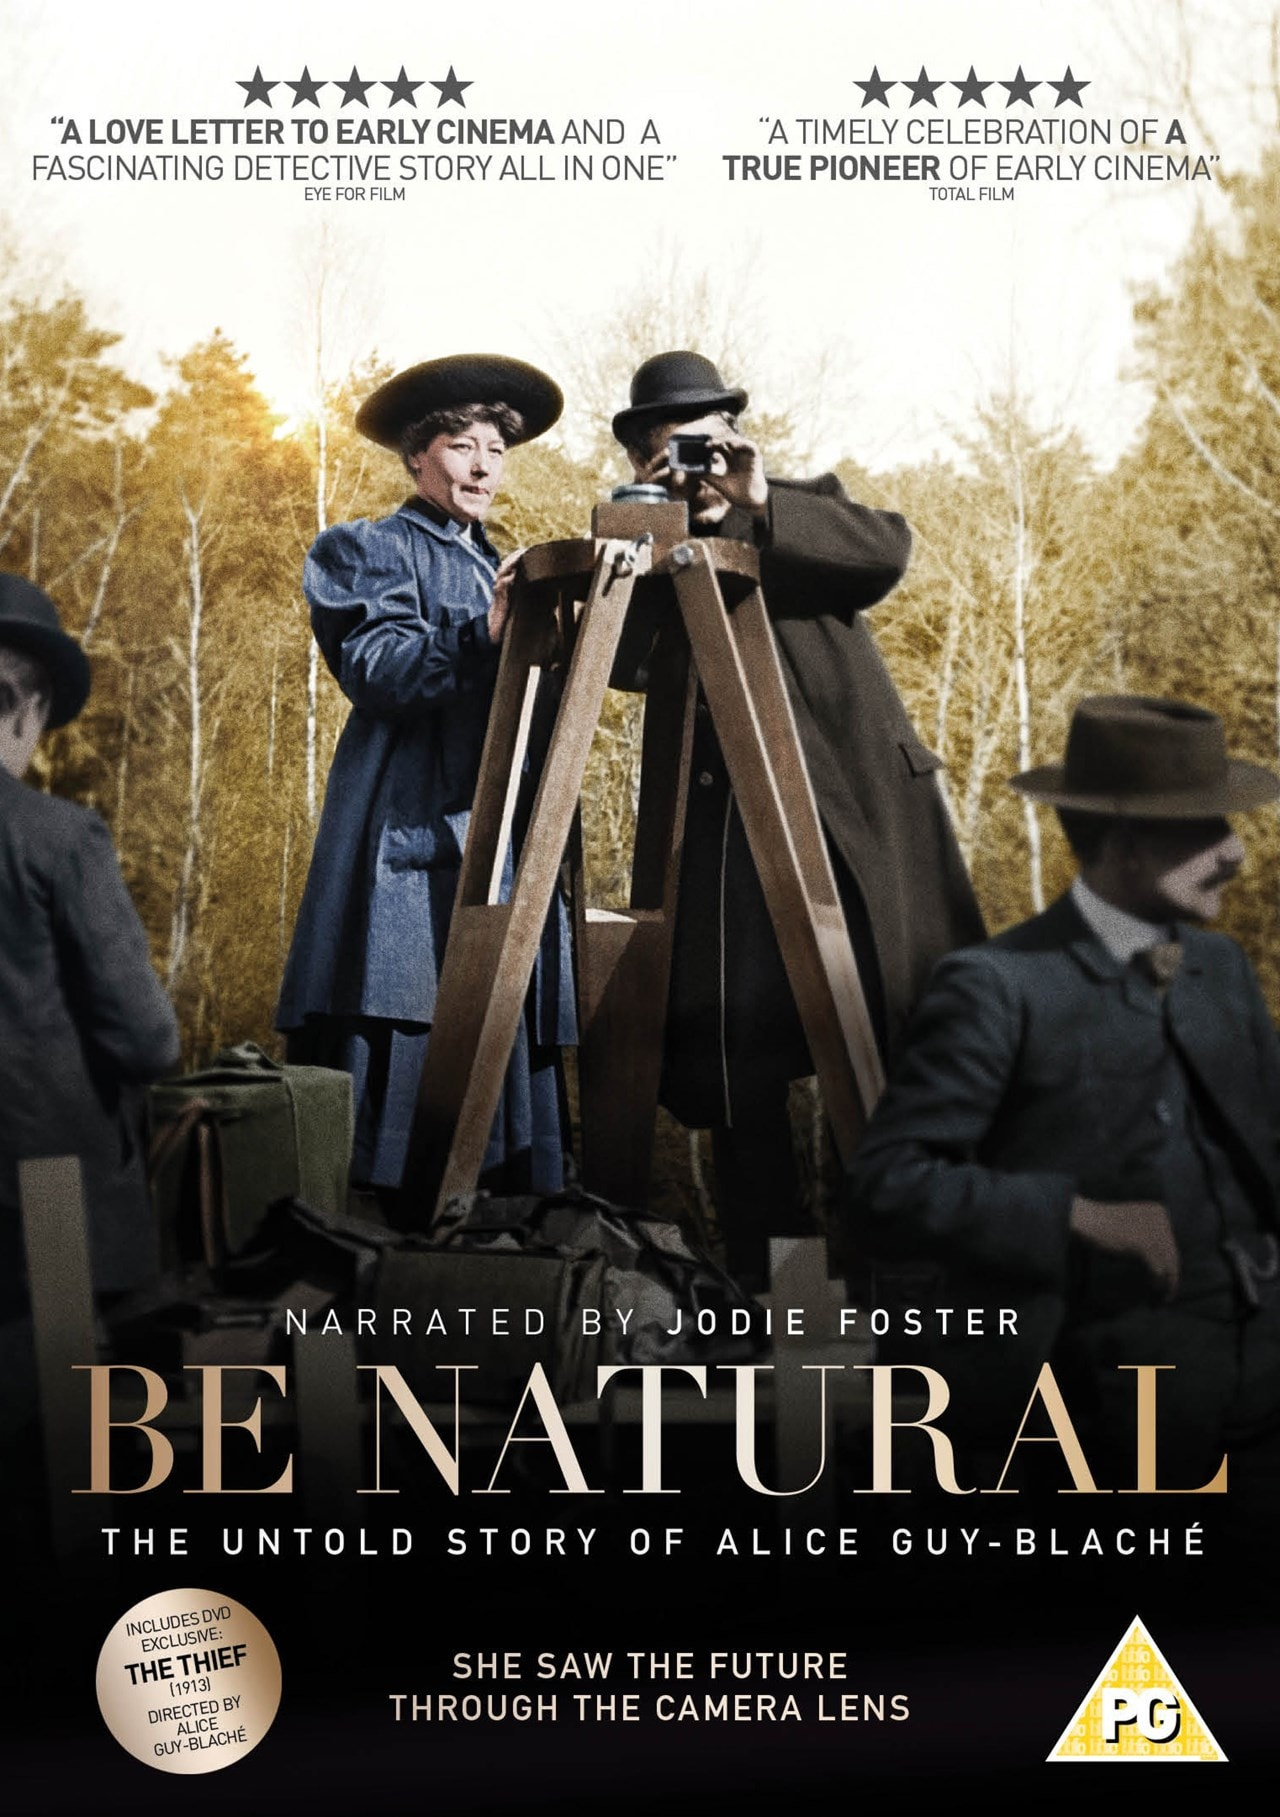 Be Natural - The Untold Story of Alice Guy-Blache - 1